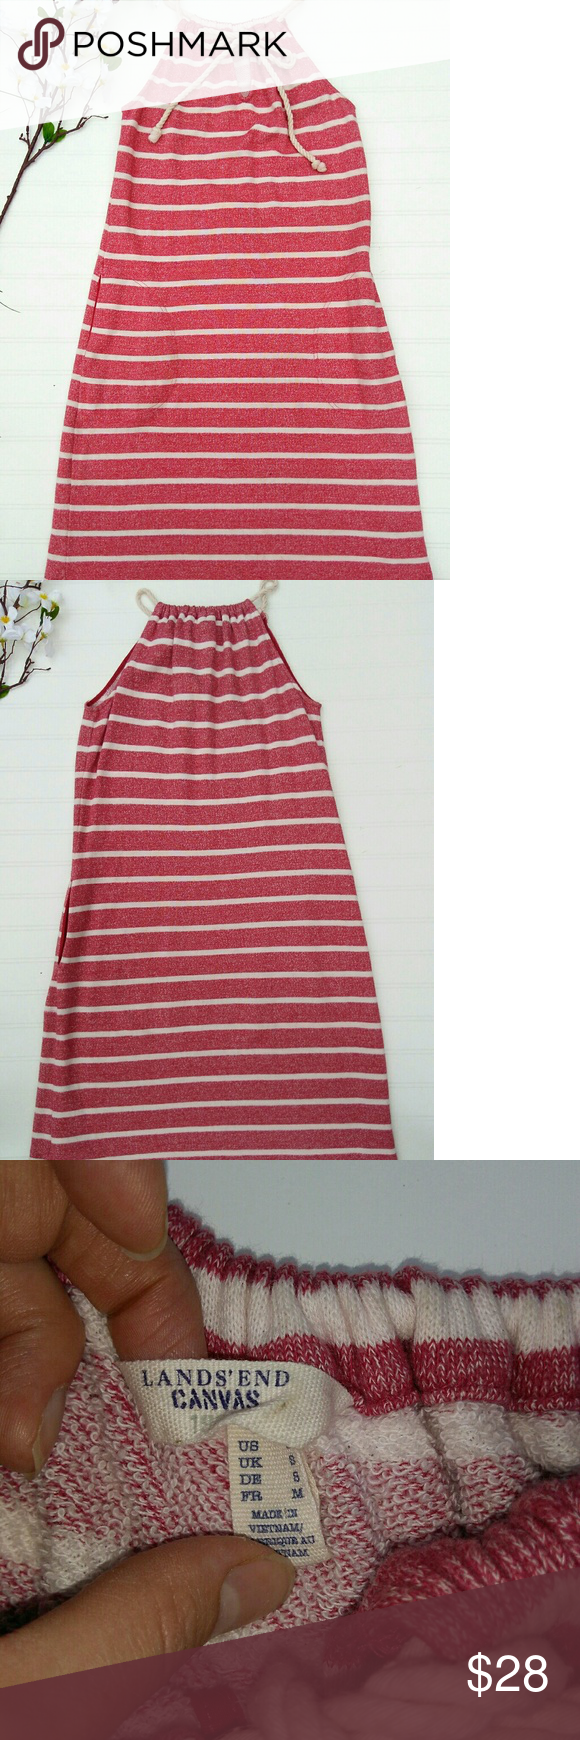 649c269839f Lands End red stripe causal nautical dress sz S Fun red cream striped  nautical dress from Lands end. Size small. Features adjustable rope straps  that tow at ...